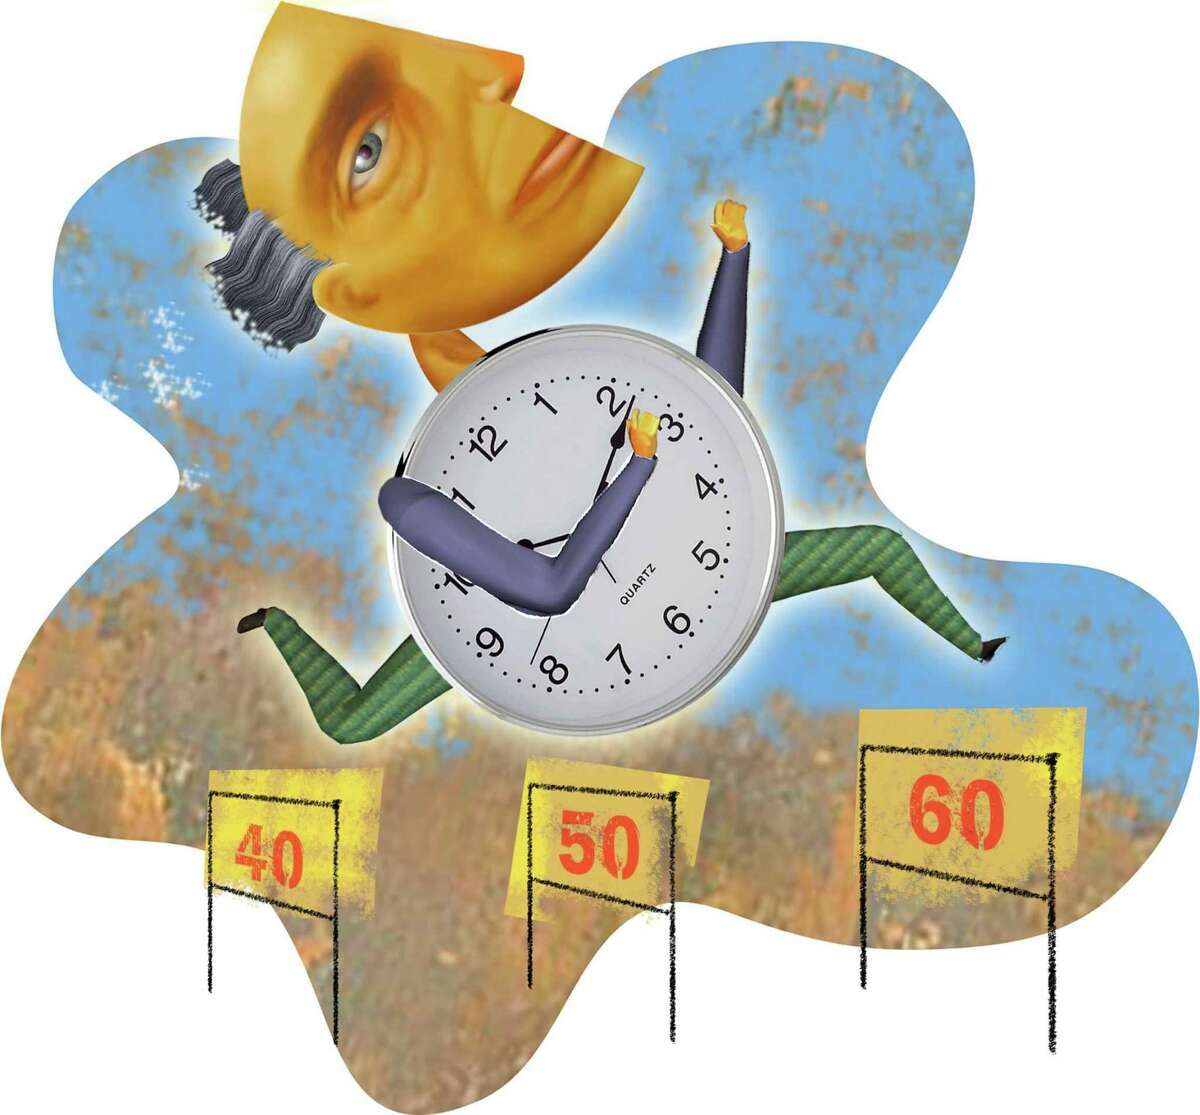 300 dpi Rick Nease color illustration of man with ticking clock body jumping over progressive age hurdles: 40, 50 and 60. Detroit Free Press 2007 midlife crisis illustration forties fifties sixties aging time birthday elderly senior citizens boomers clock hurdle old age turning fifty sixty krtfeatures features, krtnational national, krtworld world, krtlifestyle lifestyle, krtseniors senior citizen, krt, mctillustration, ilustracion grabado cumpleanos edad mayor tiempo reloj aspecto aspectos, 2007, krt2007, de contributed coddington nease mct mct2007